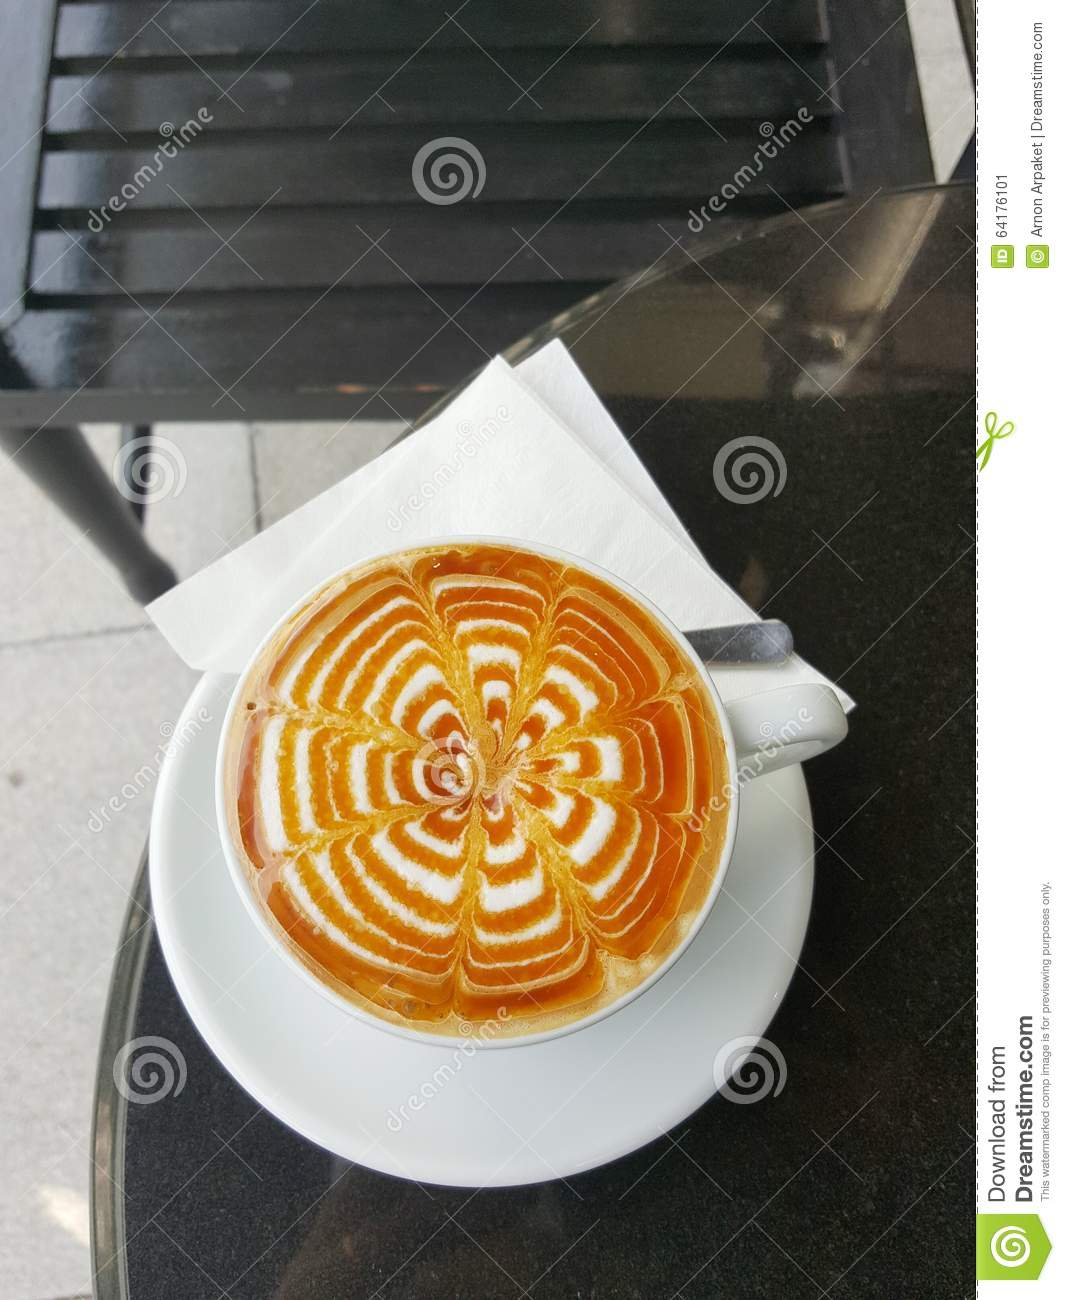 Italian caffe macchiato is made with an espresso and a small amount of milk. In France they have cafe noisette: it's the same, an epresso with a little bit of milk (sometimes cream).But today's caramel macchiato is an American version: an espresso with caramel sauce and significant amount of milk.